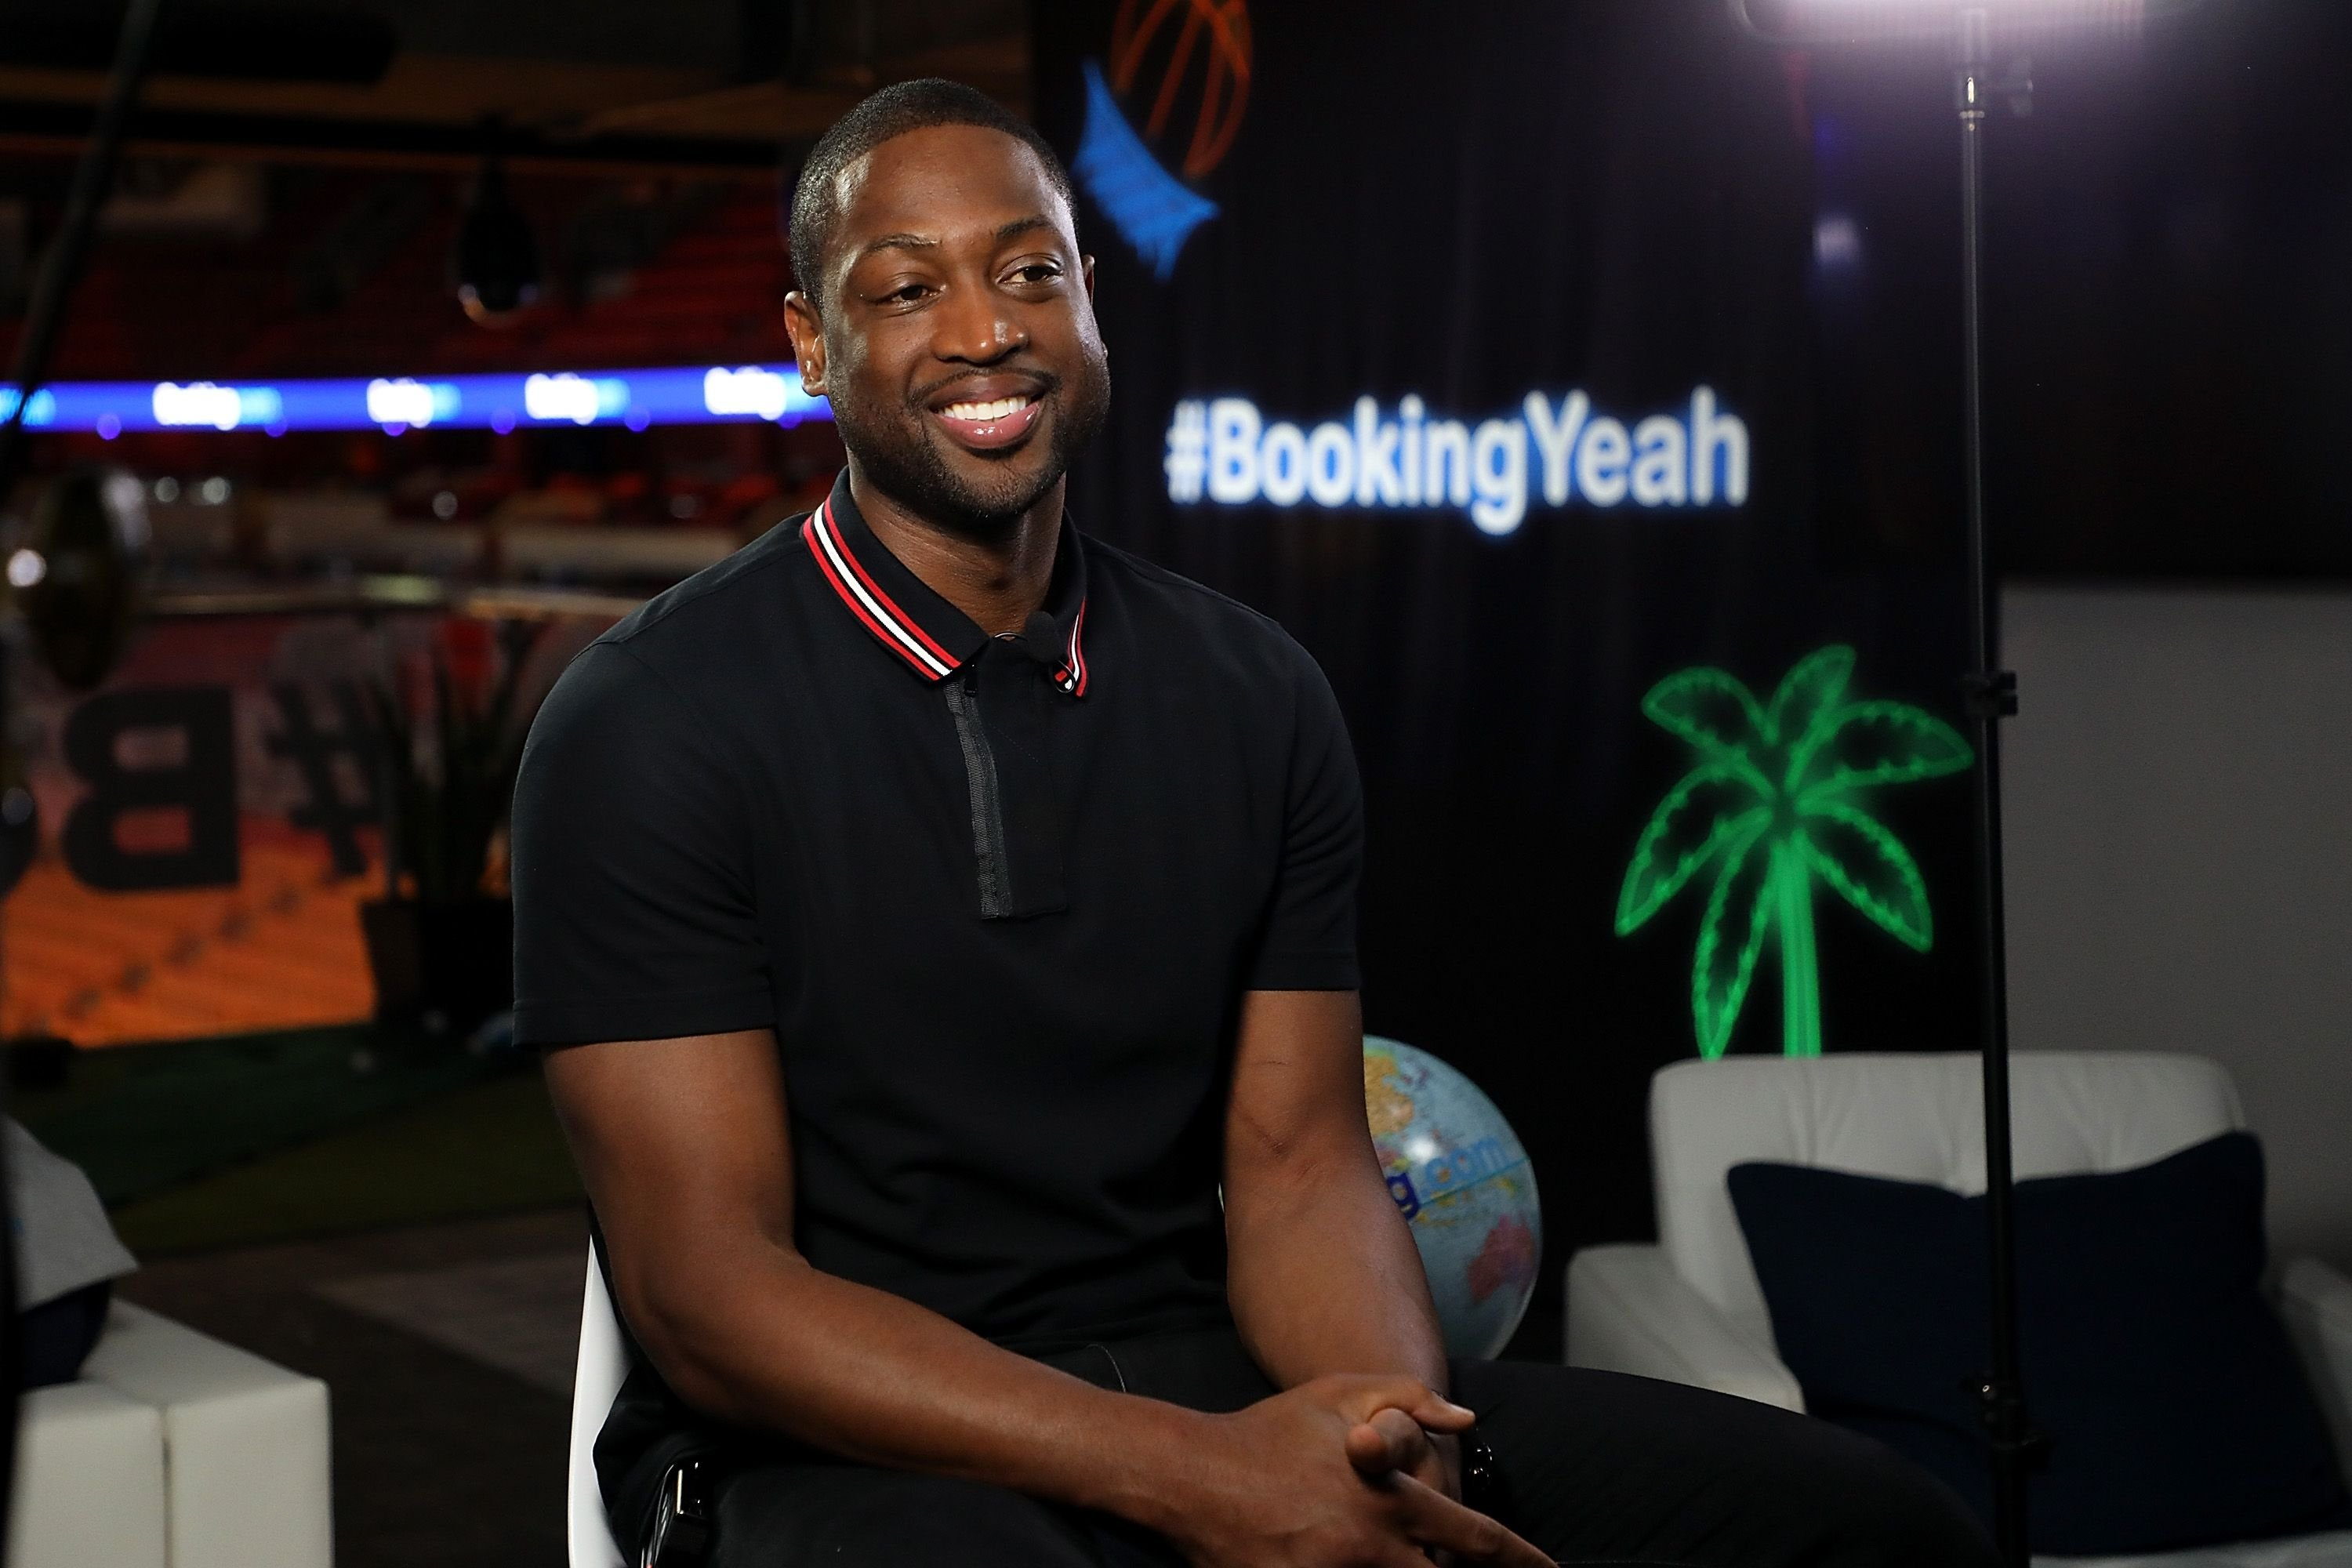 Dwyane Wadeat Booking.com Kicks Off March 7, 2018 in Miami, Florida | Photo: Getty Images